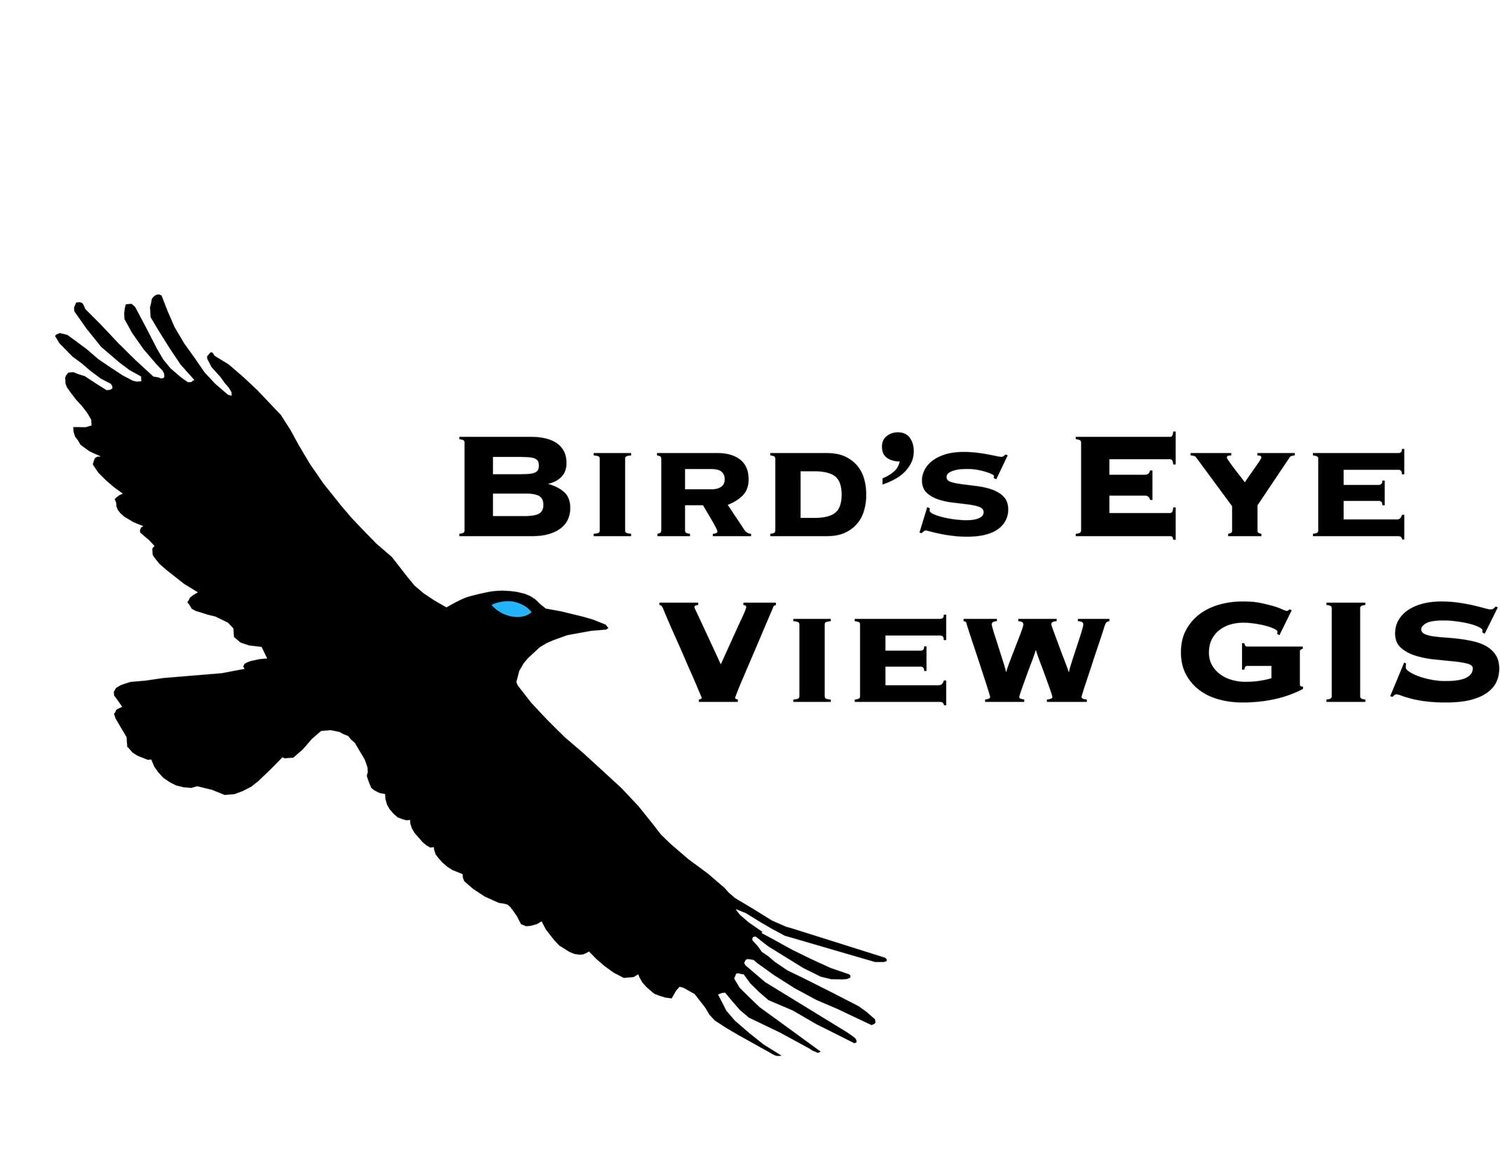 Workshop — Blog — Bird's Eye View GIS